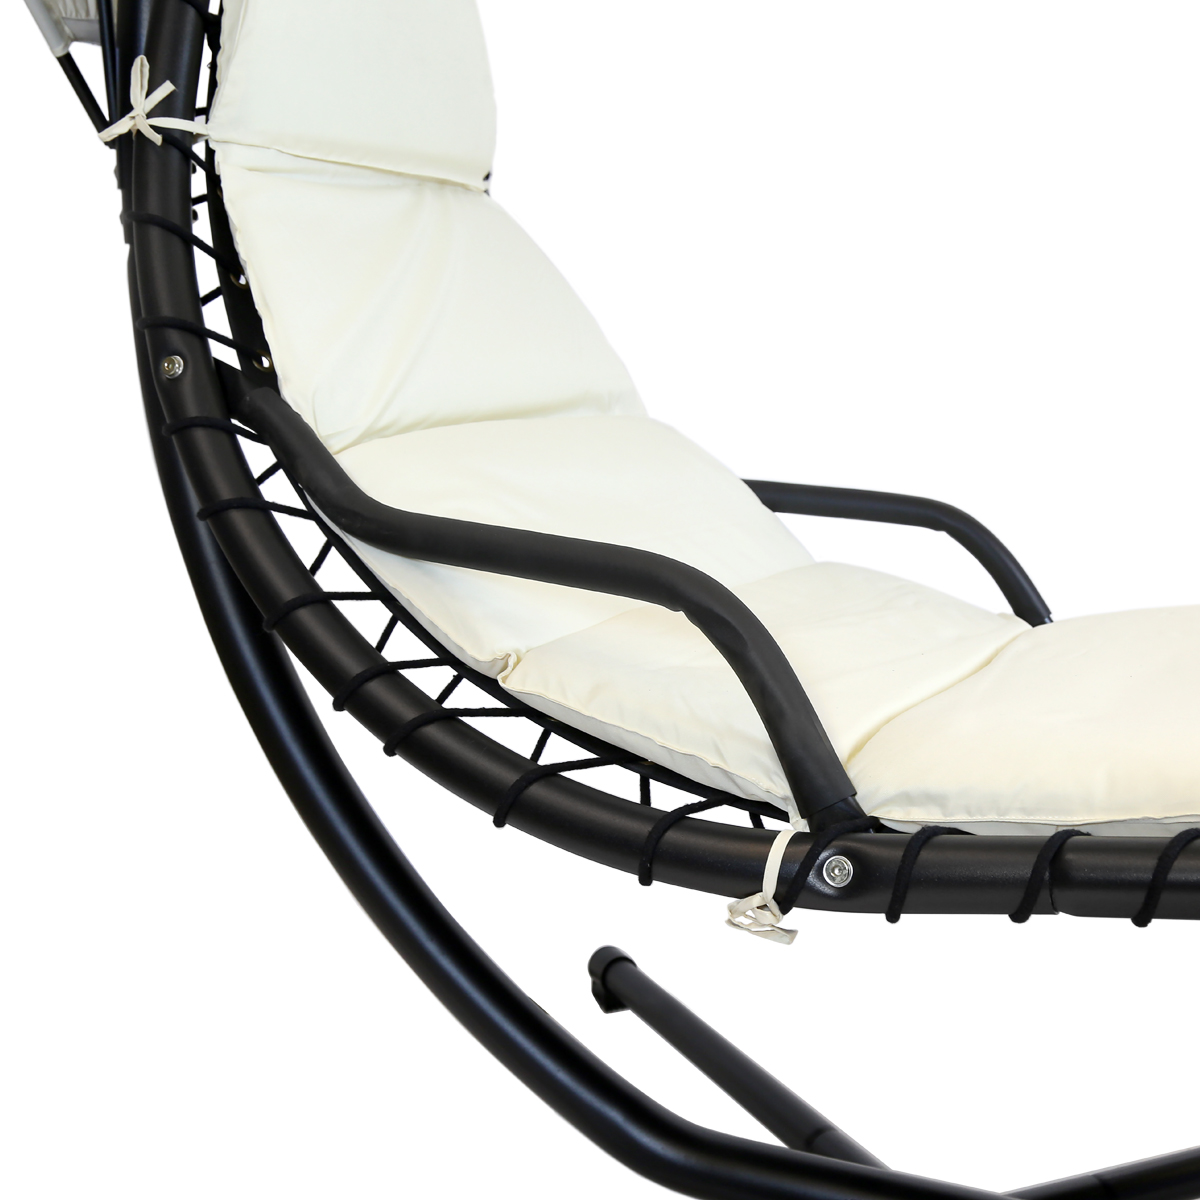 Patio Swing Chair Charles Bentley Garden Helicopter Patio Swing Chair Seat